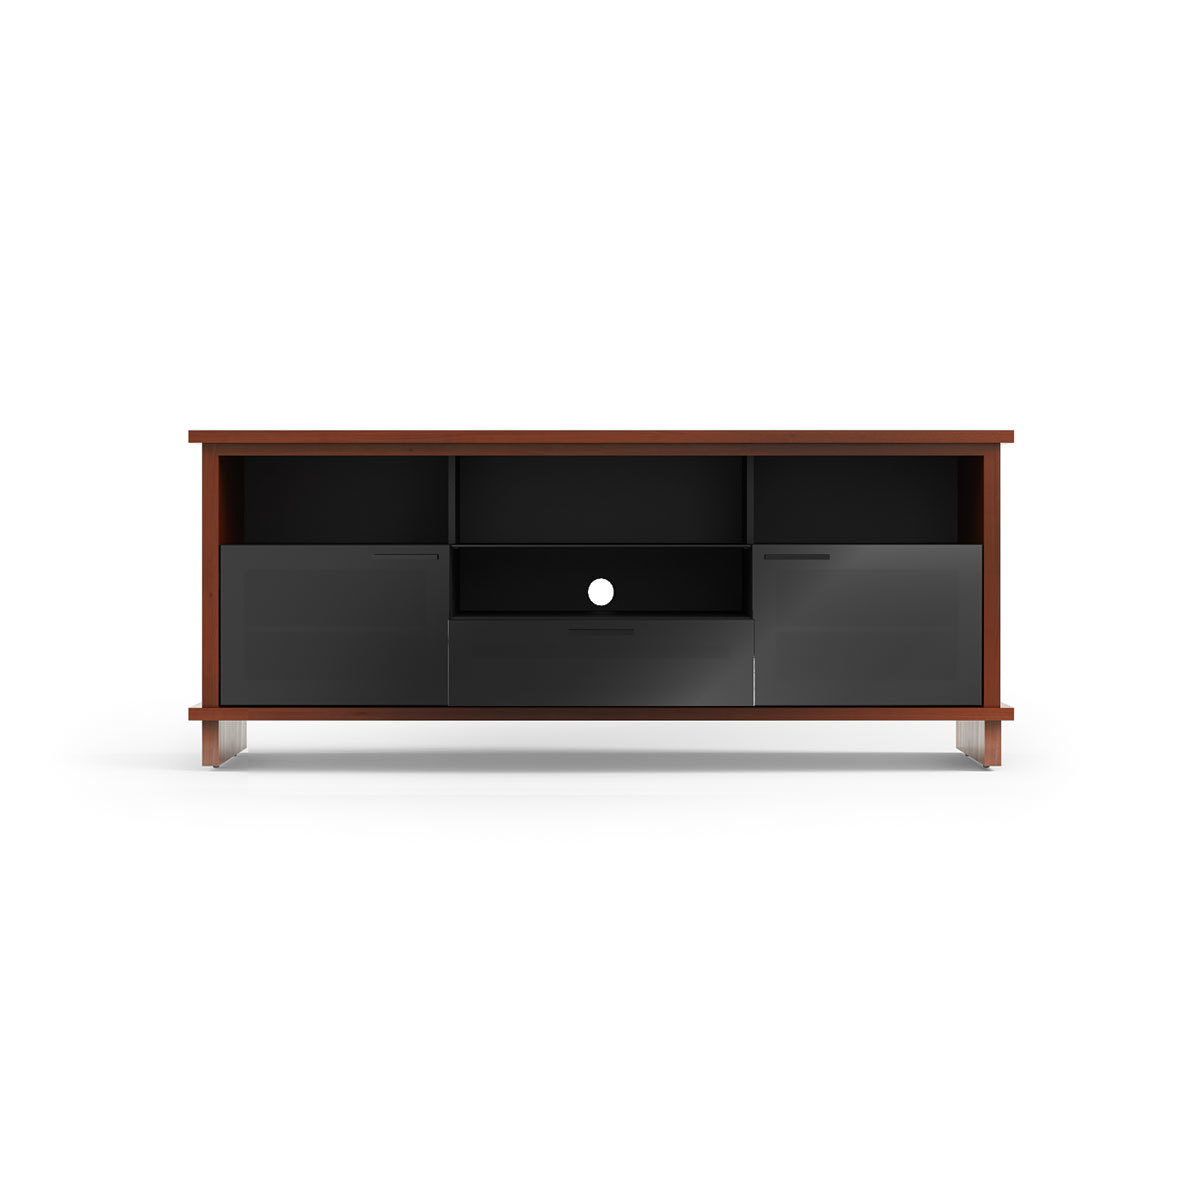 Full Specifications; User Guide · Medie Furniture Features Video; About  Finishes